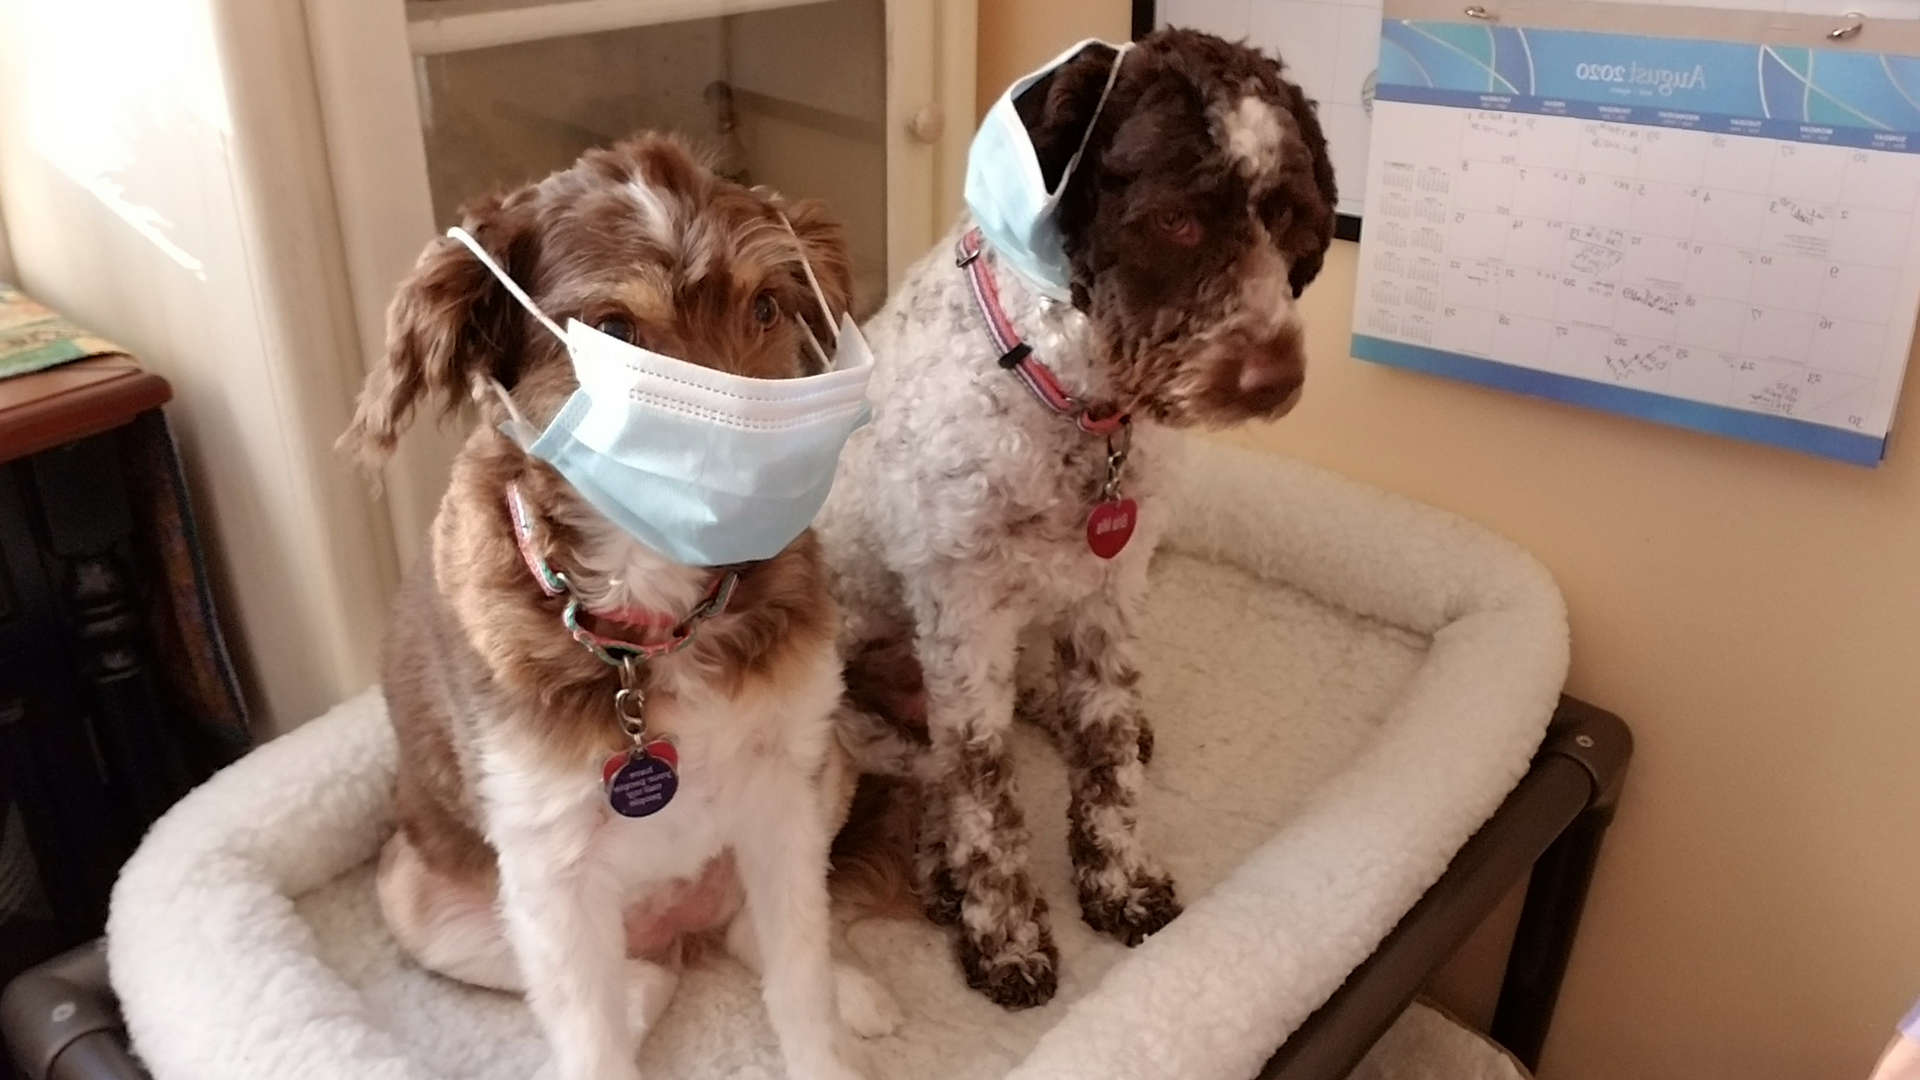 2 dogs wearing safety masks for Covid